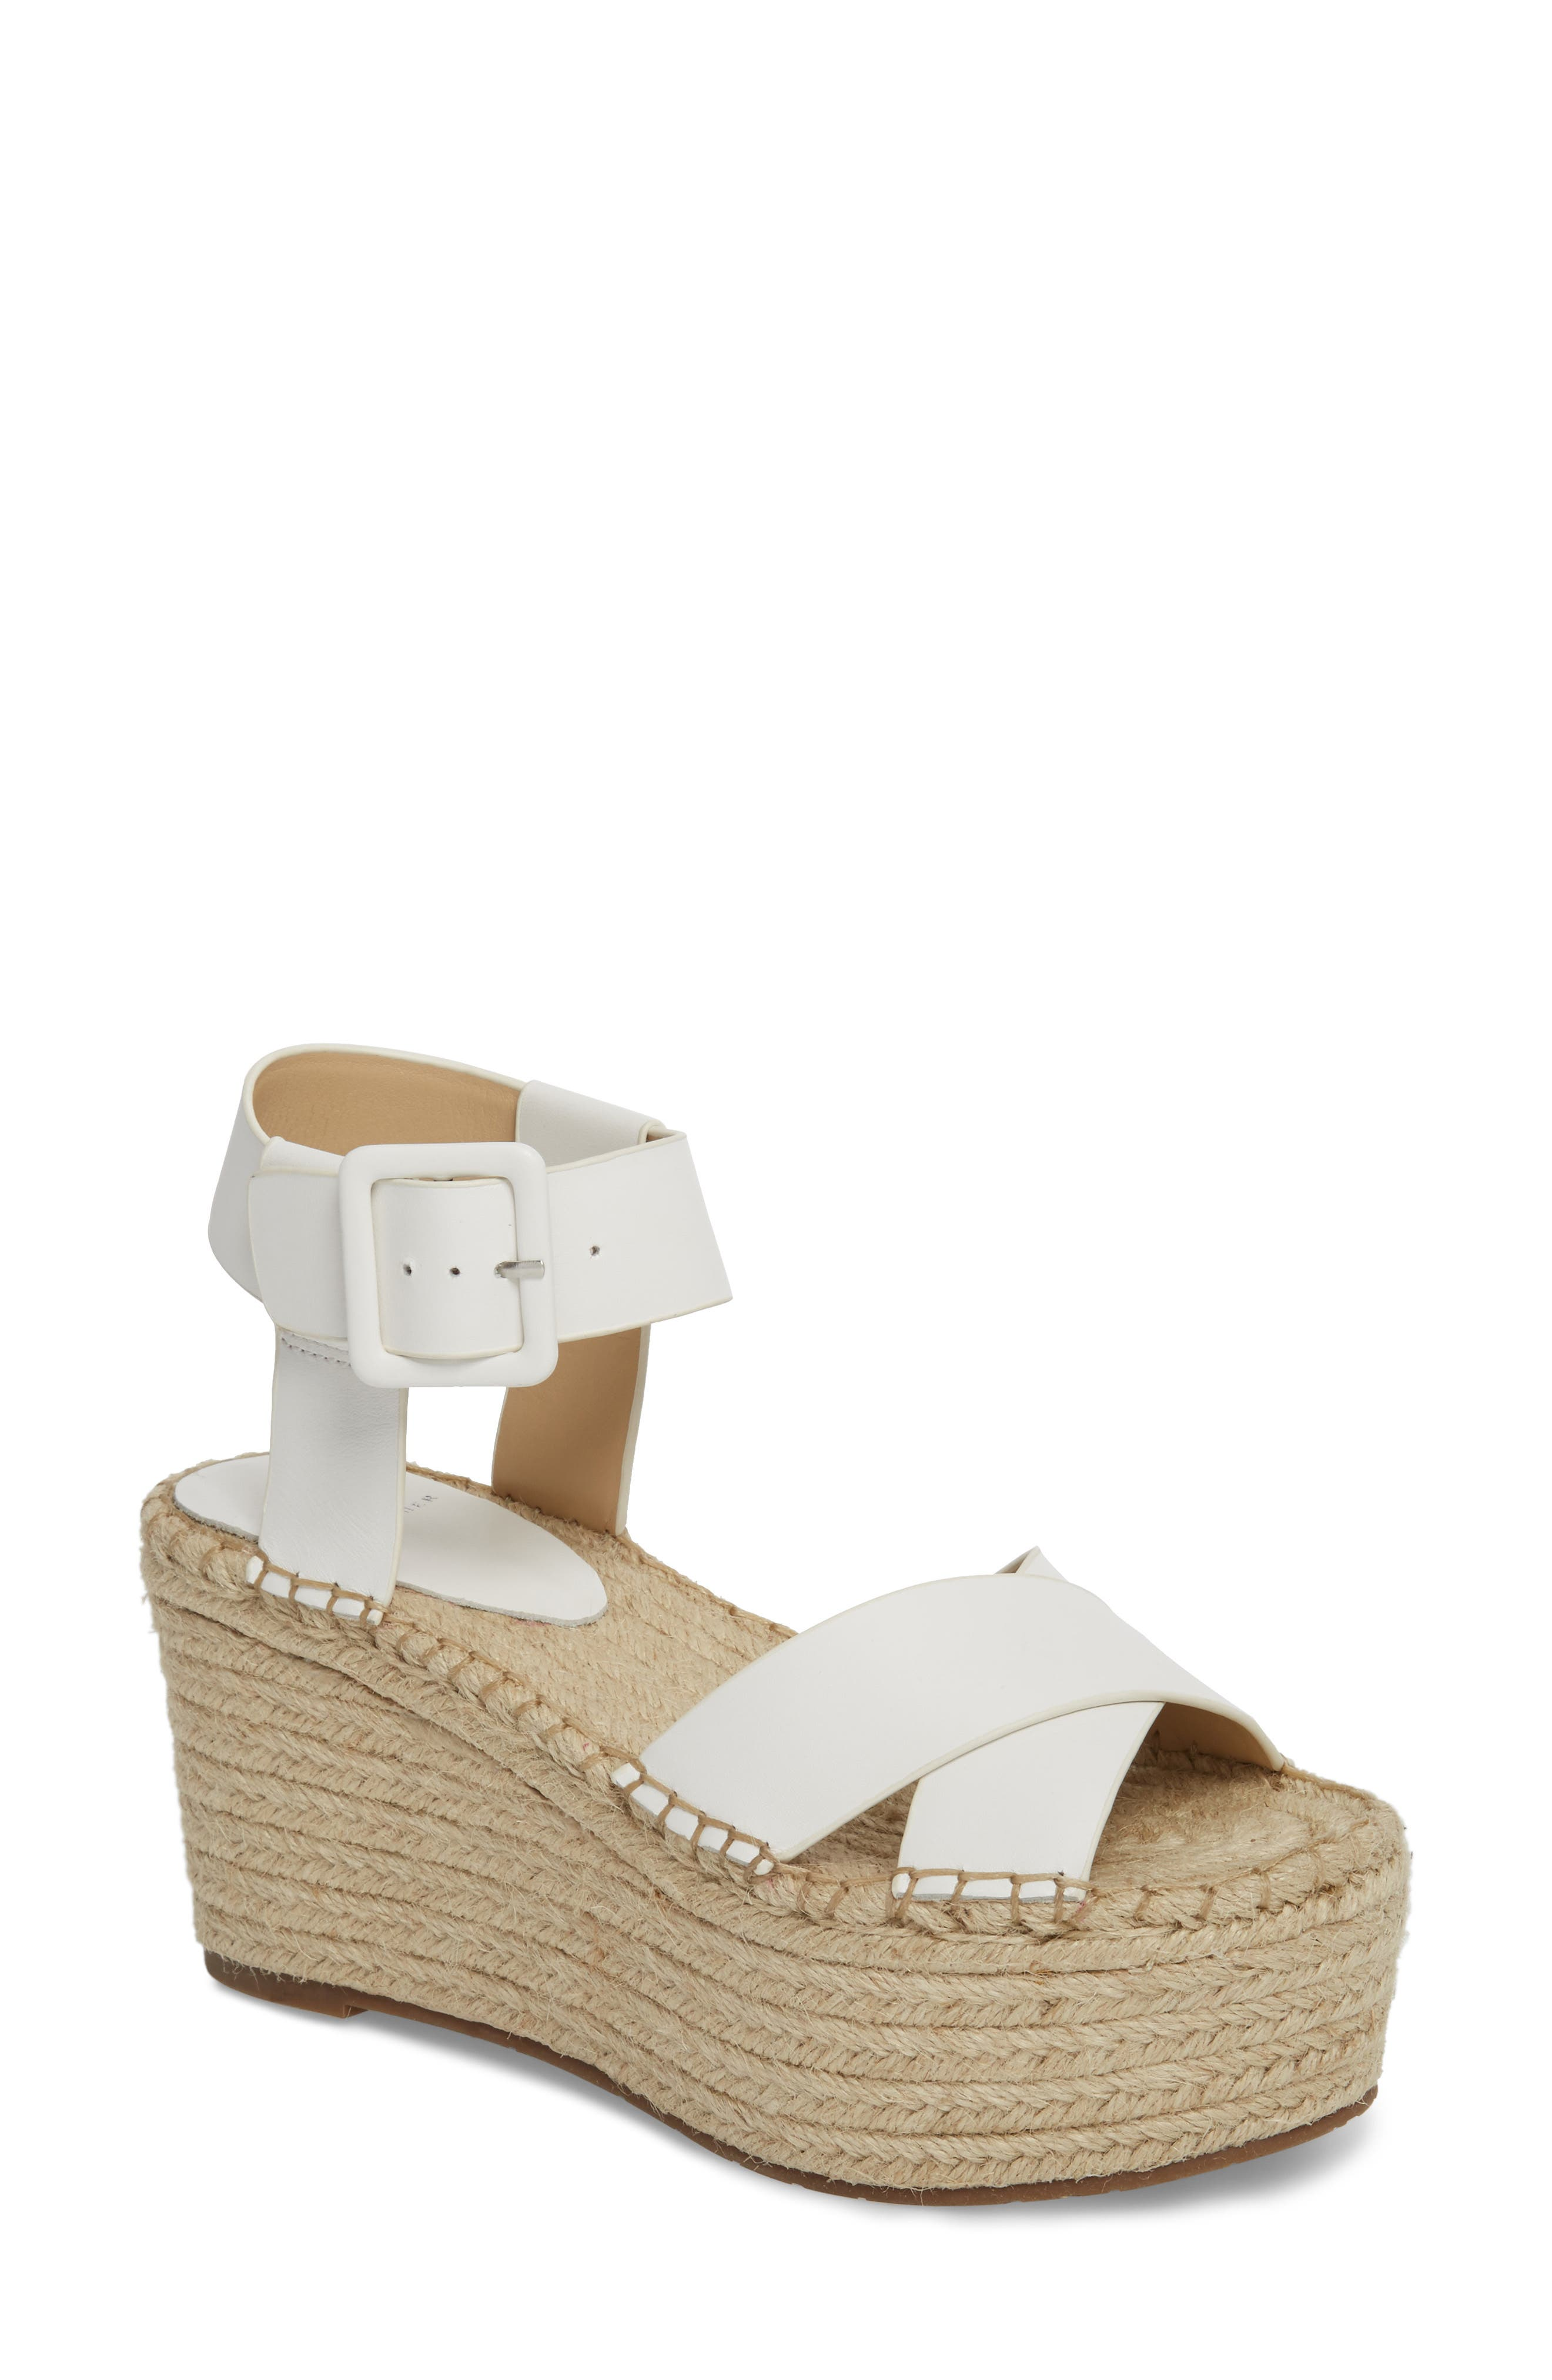 'Randall' Platform Wedge,                         Main,                         color, 112